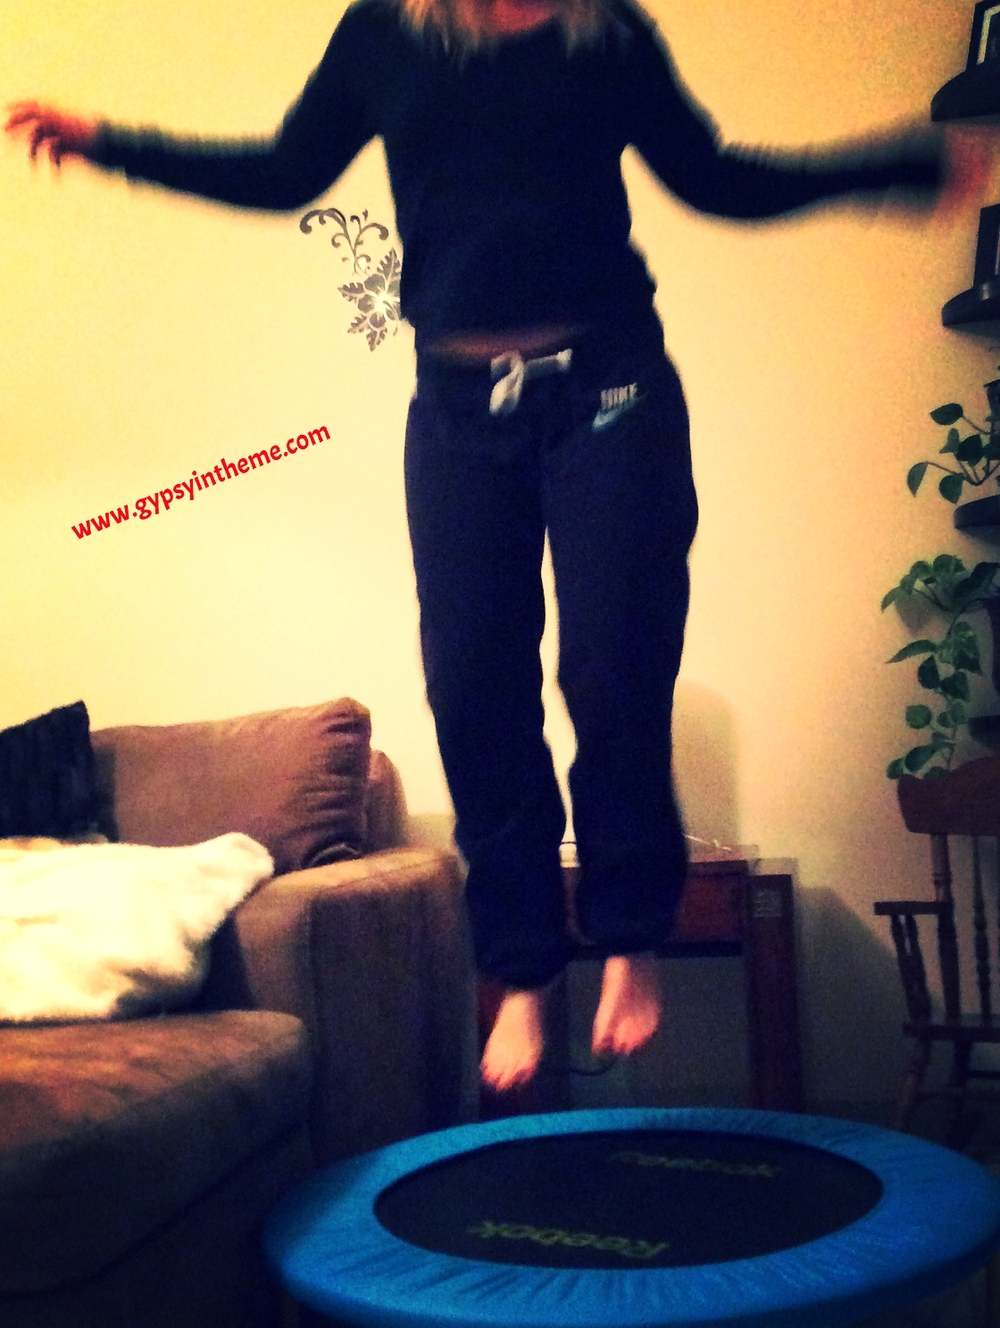 Life is full of little surprises.  I never thought a mini-trampoline could make such a HUGE difference in my life.  In the space of five weeks, I've practically eradicated the back pain, heel pain, buttock tightness, and leg numbness that had been plaguing me for years.  I feel like a new person.  I have no reason to stop.  25 minutes four times a week while watching a short episode of Come Dine With Me with Kiddo ... I'm happy!